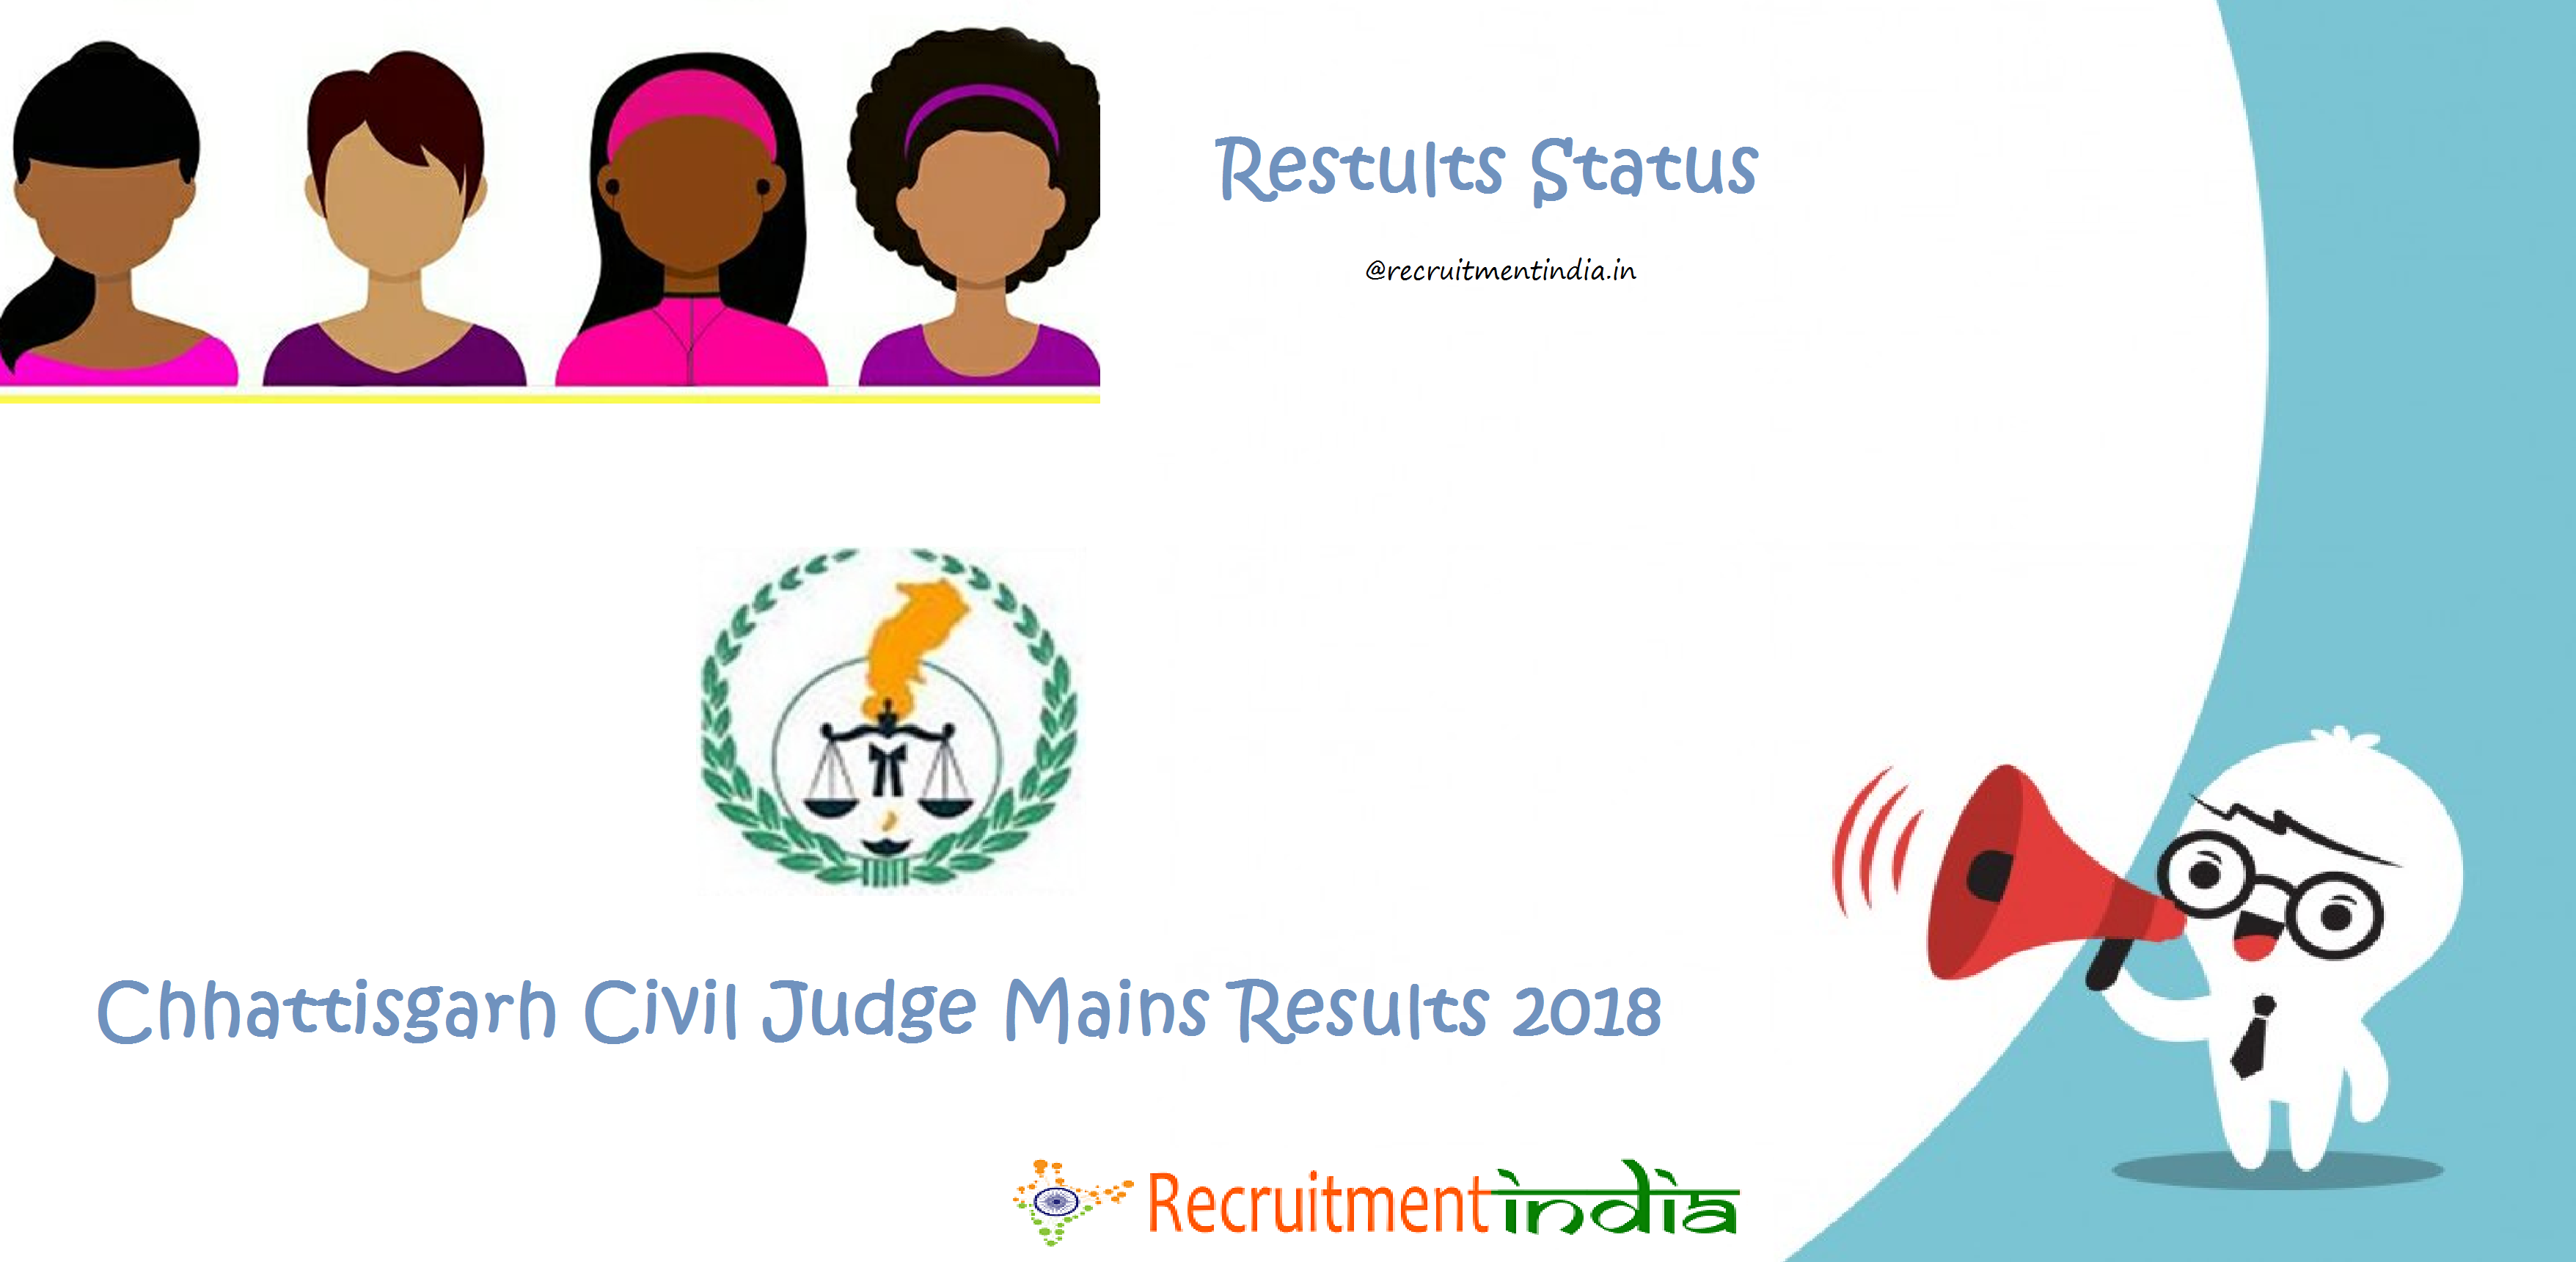 Chhattisgarh Civil Judge Mains Results 2018